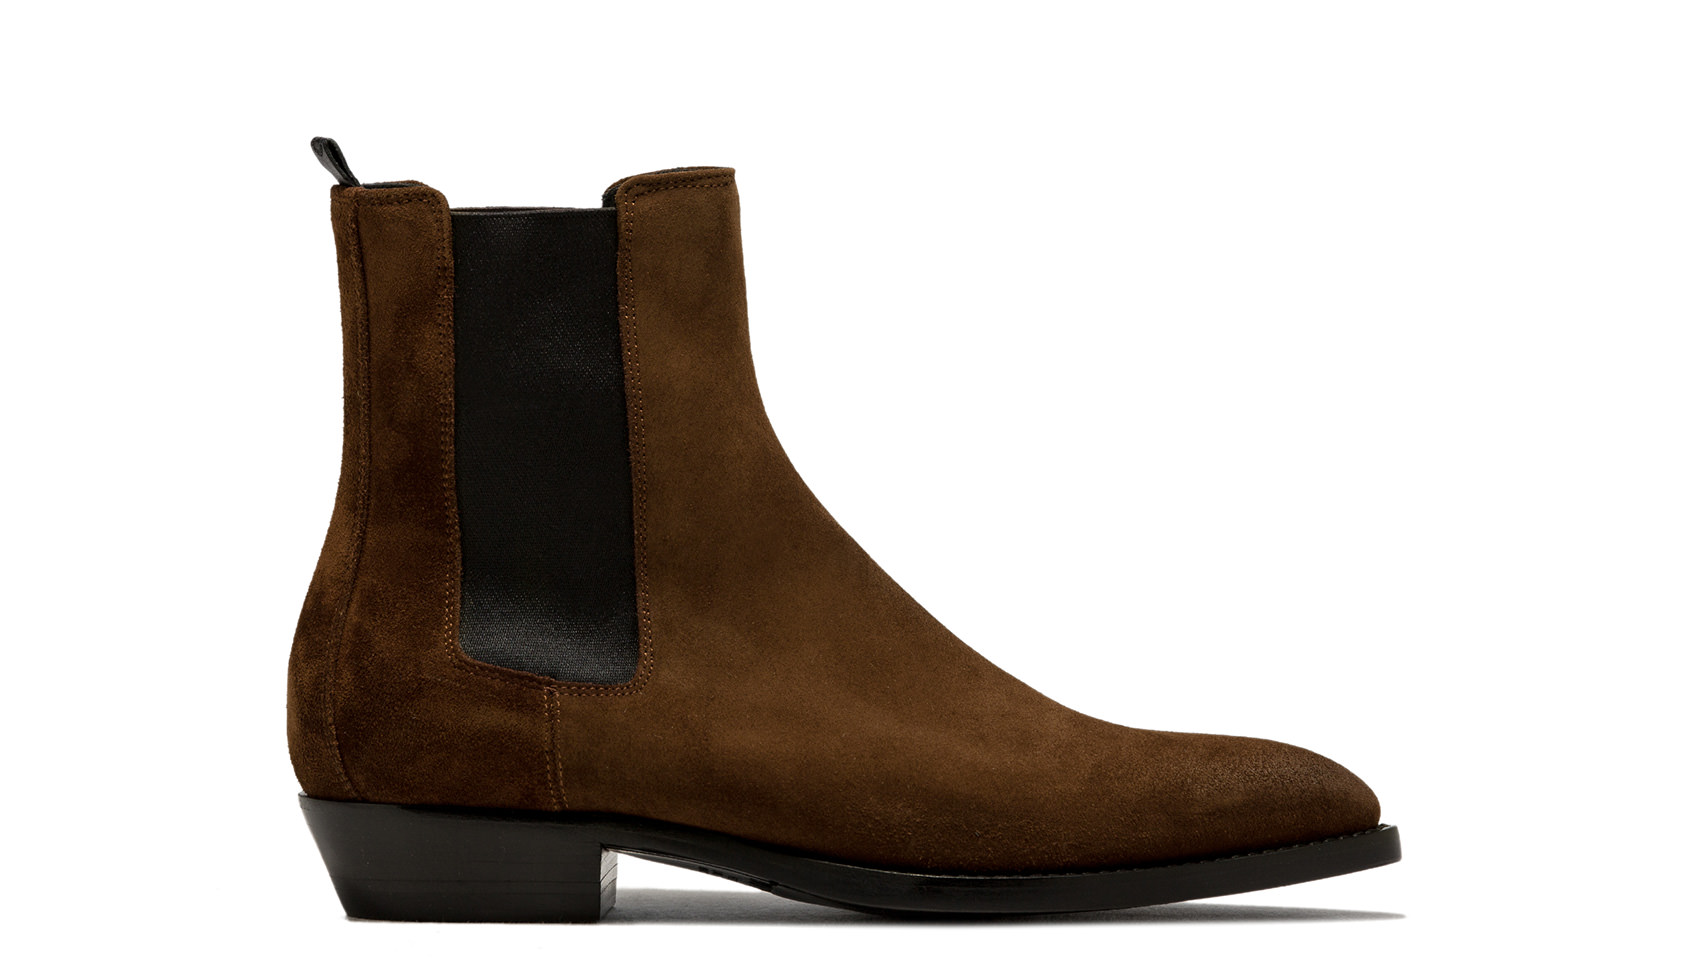 BUTTERO: SNUFF BROWN SUEDE FARGO ANKLE BOOTS